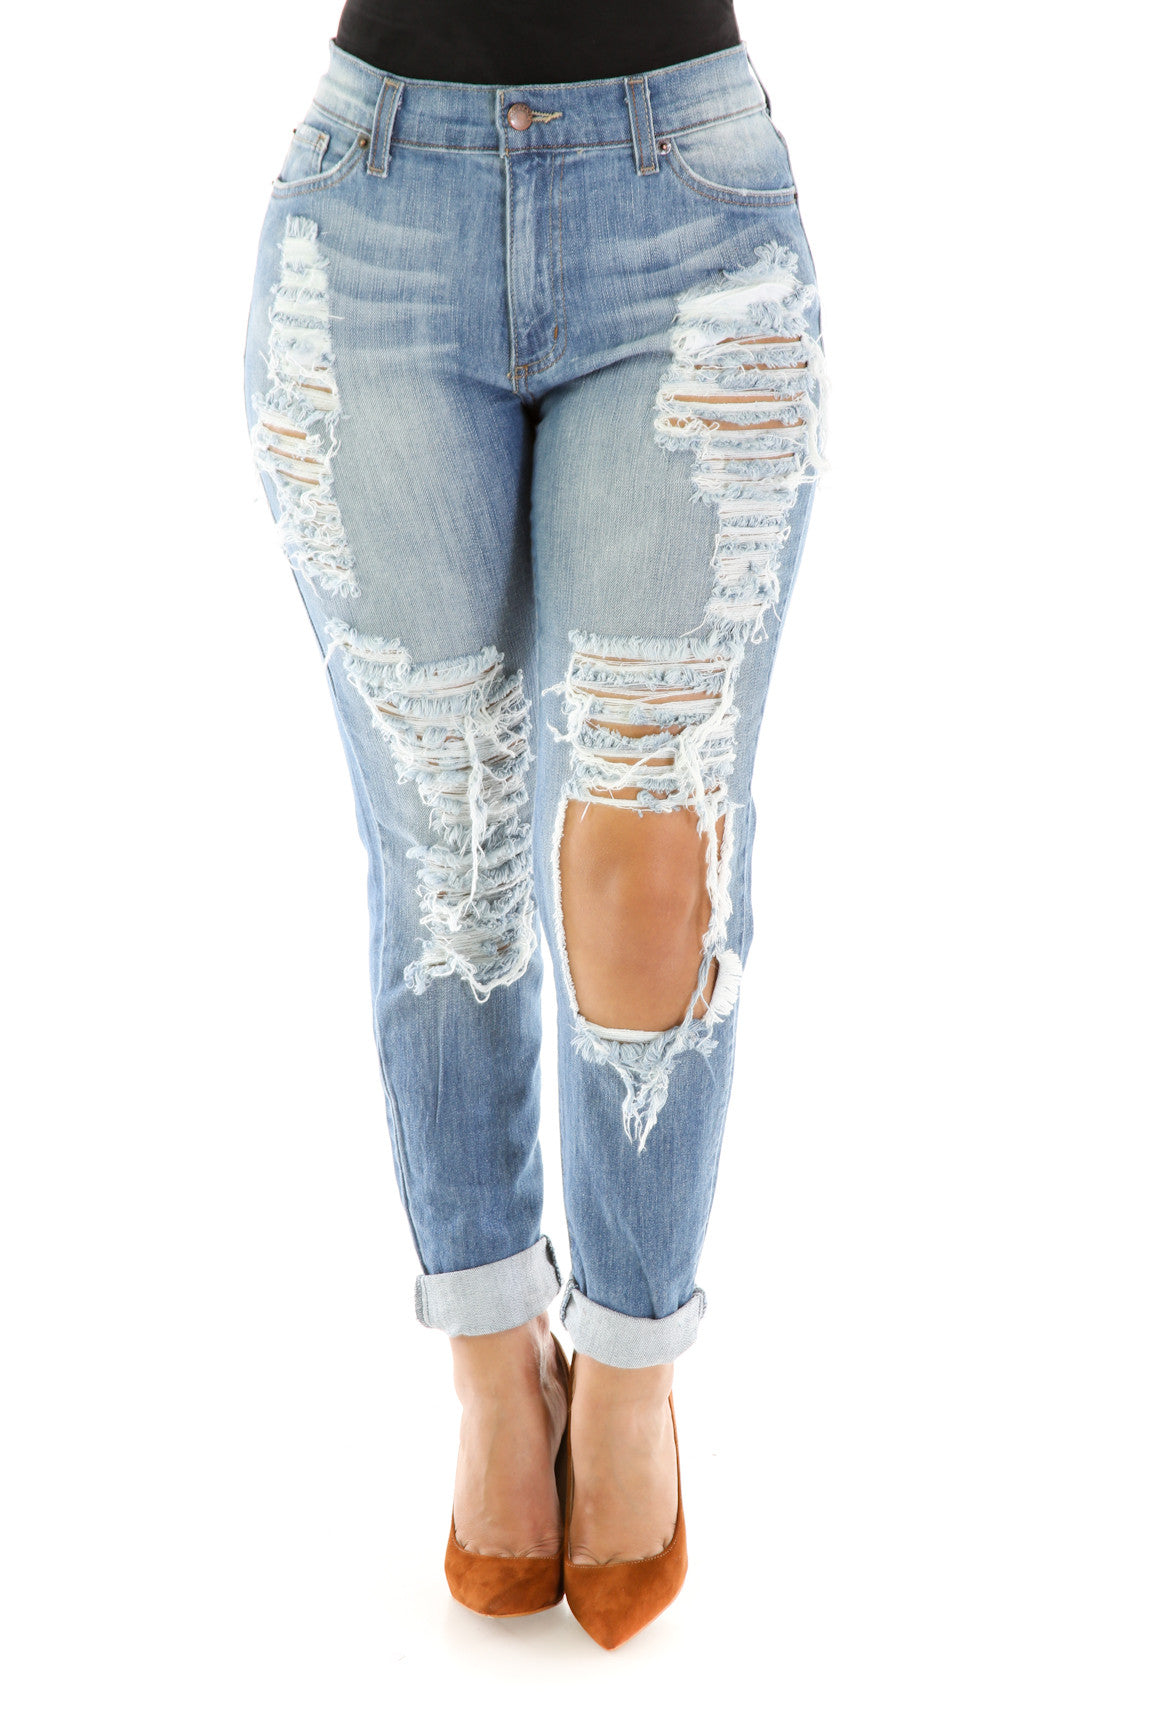 Denim Distress Jeans , Bottoms - Fashion Trend LA, Fashion Trend LA  - 3